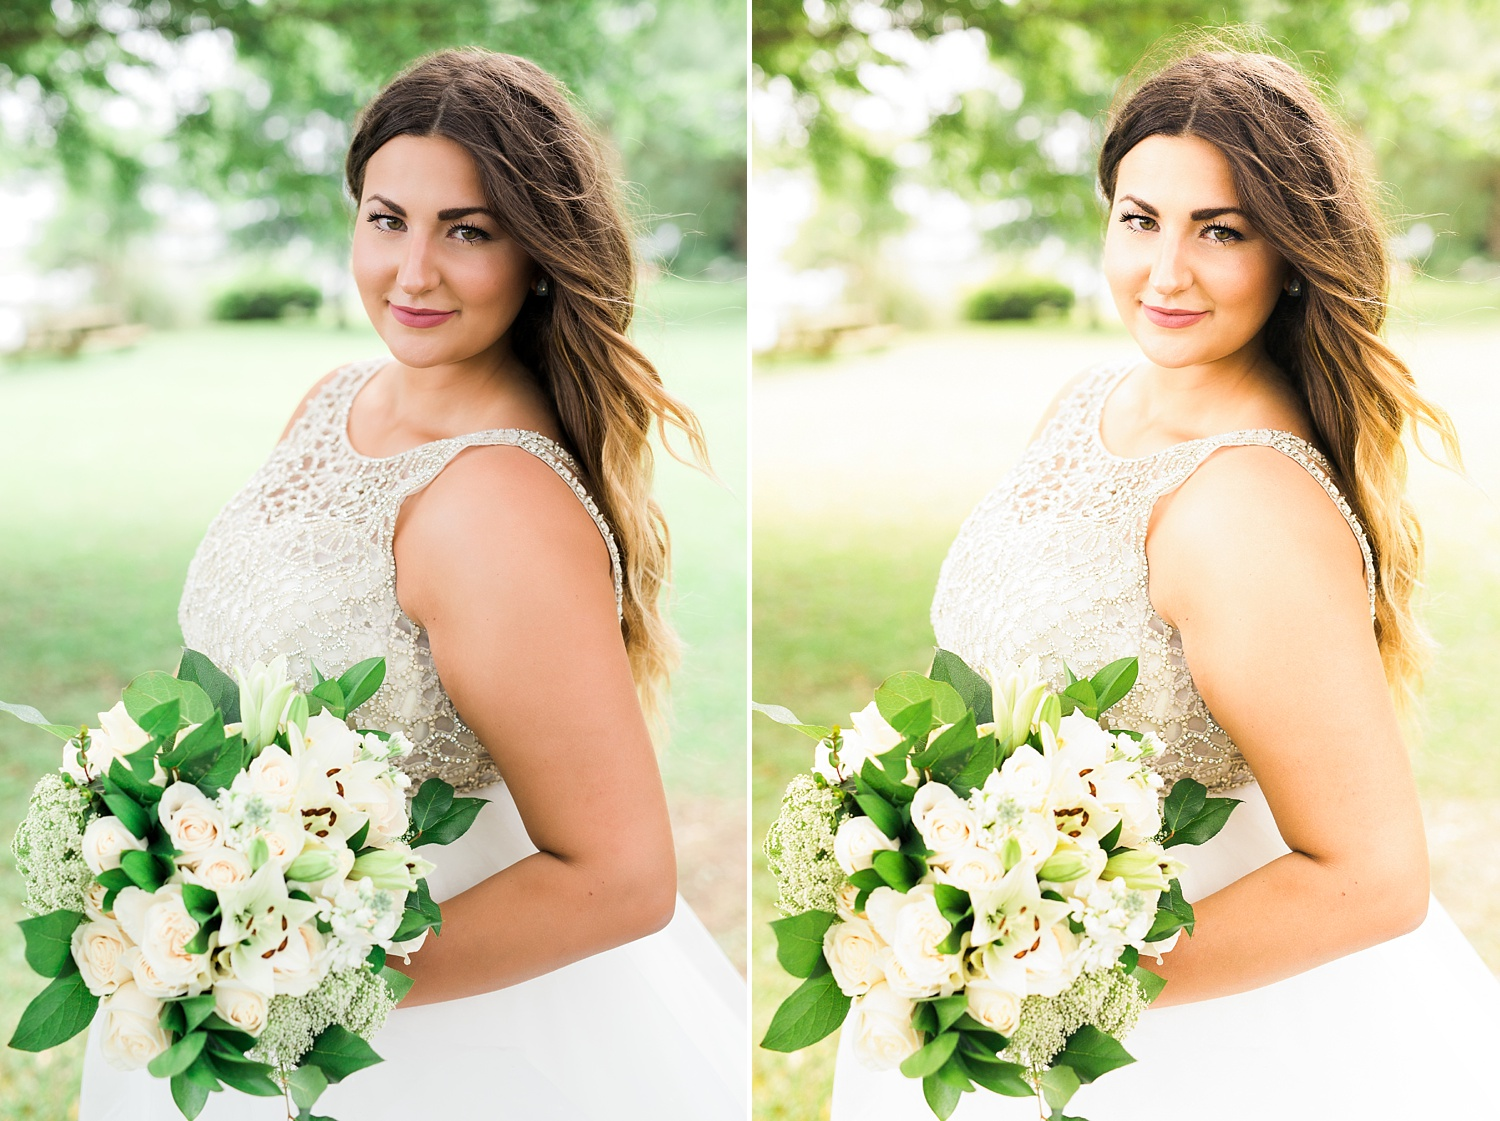 comparison of two bridal portraits with different editing techniques